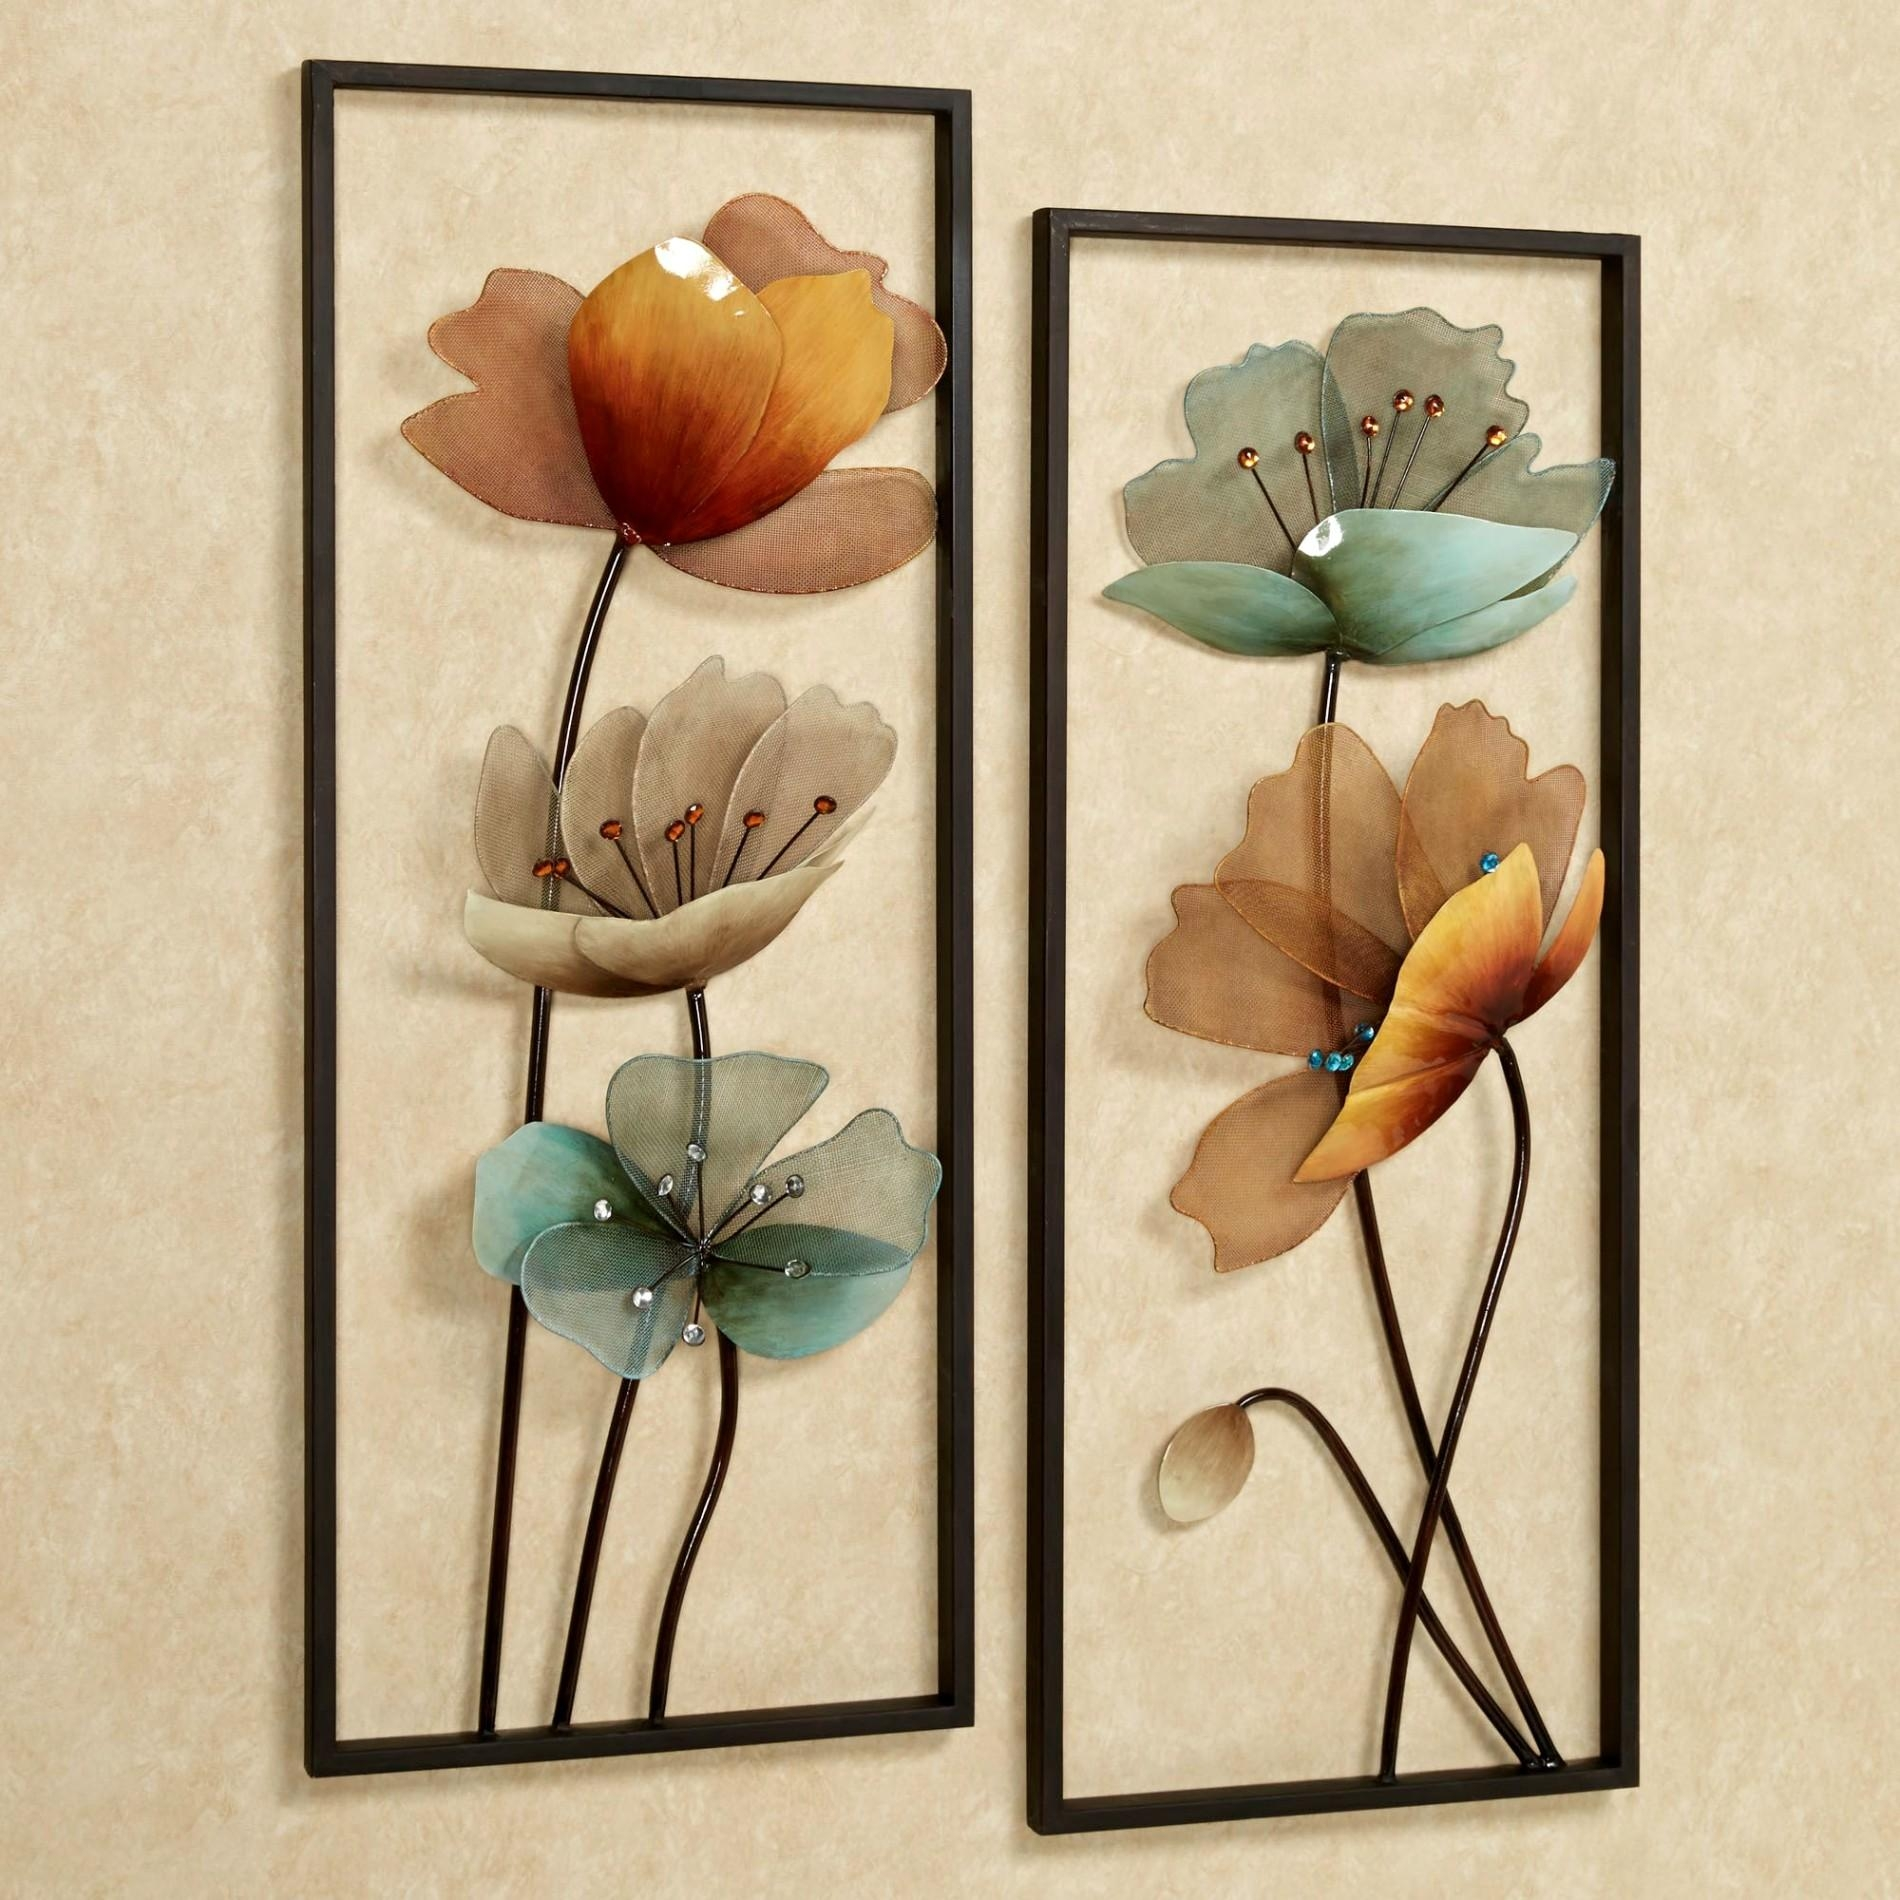 New Red Flower Metal Wall Decor Regarding Red Flower Metal Wall Art (Image 12 of 20)